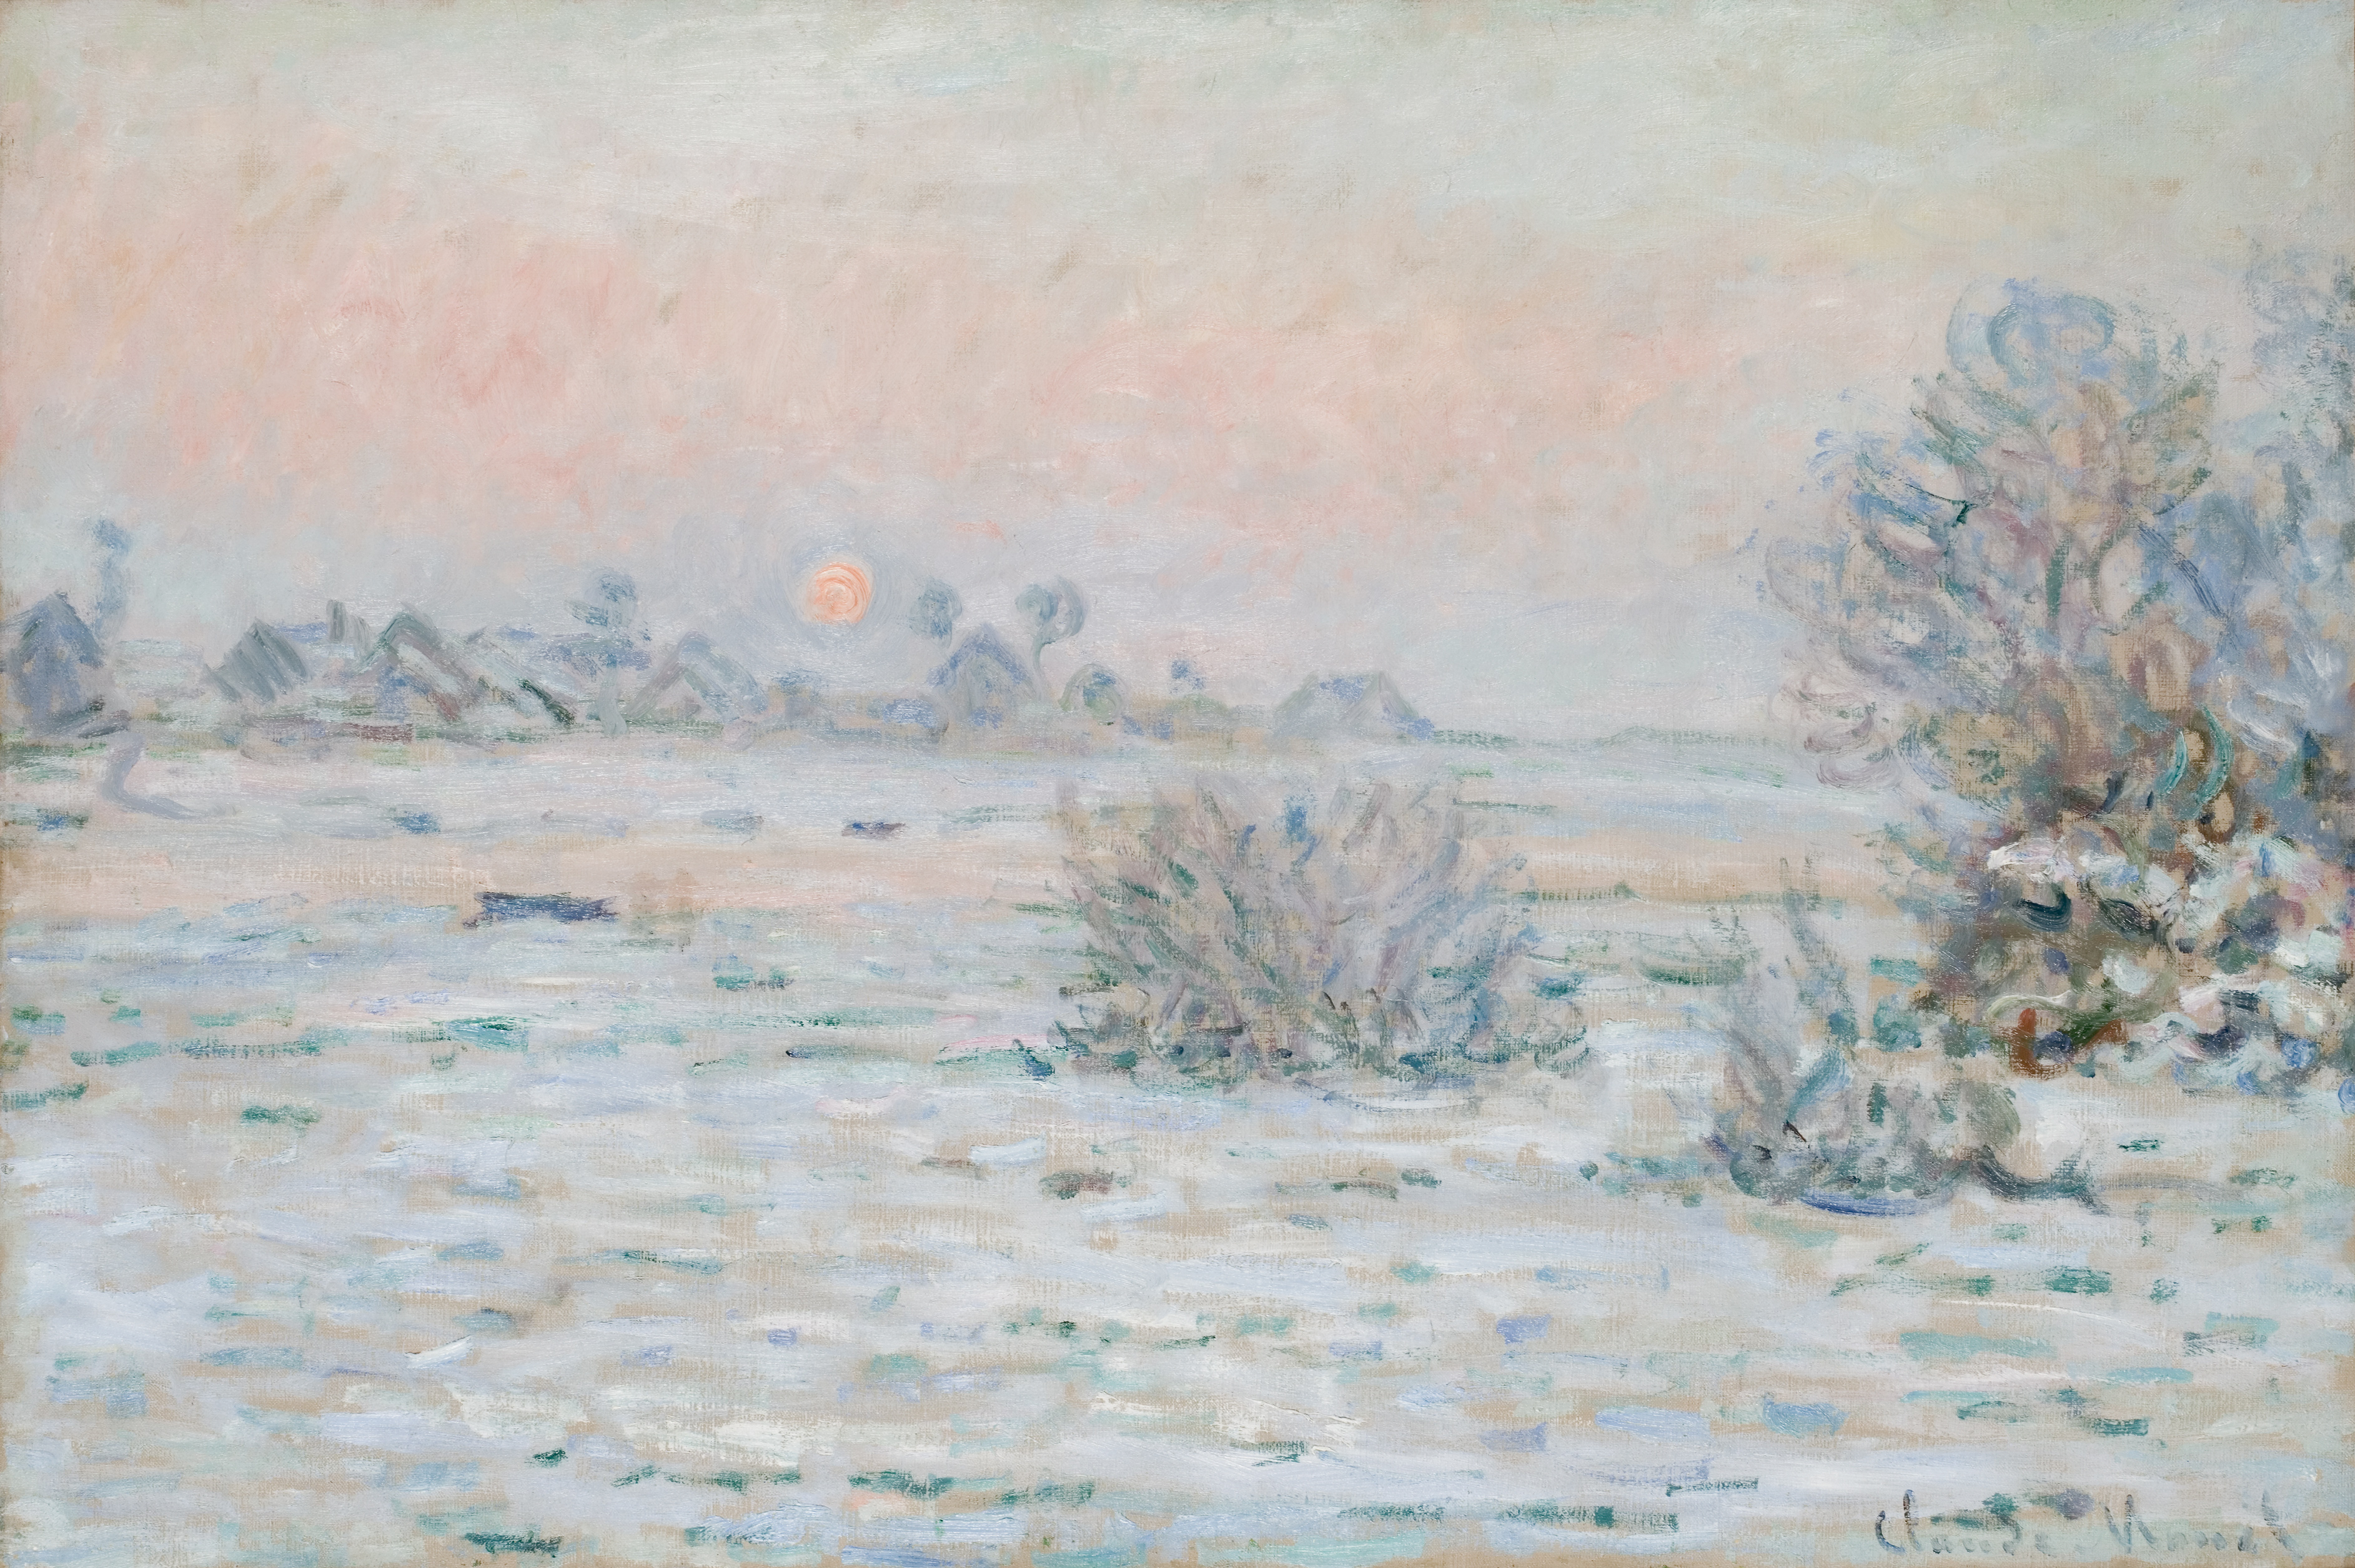 Claude Monet - Winter Sun Lavacourt 1879-1880